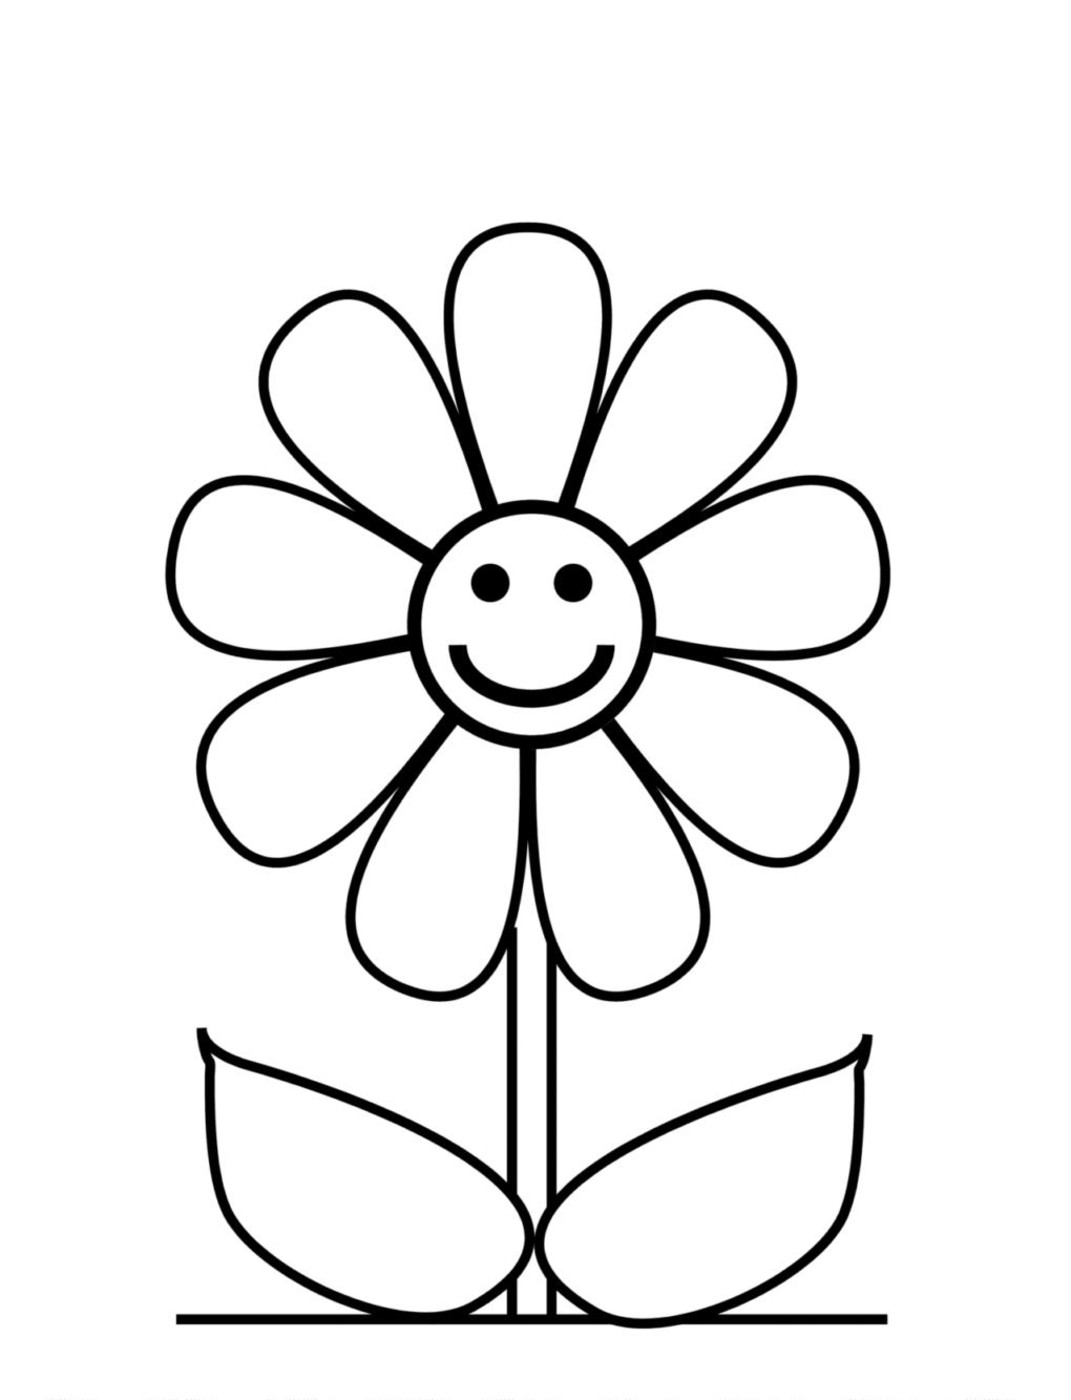 Flower_Cute_Coloring_Page_01